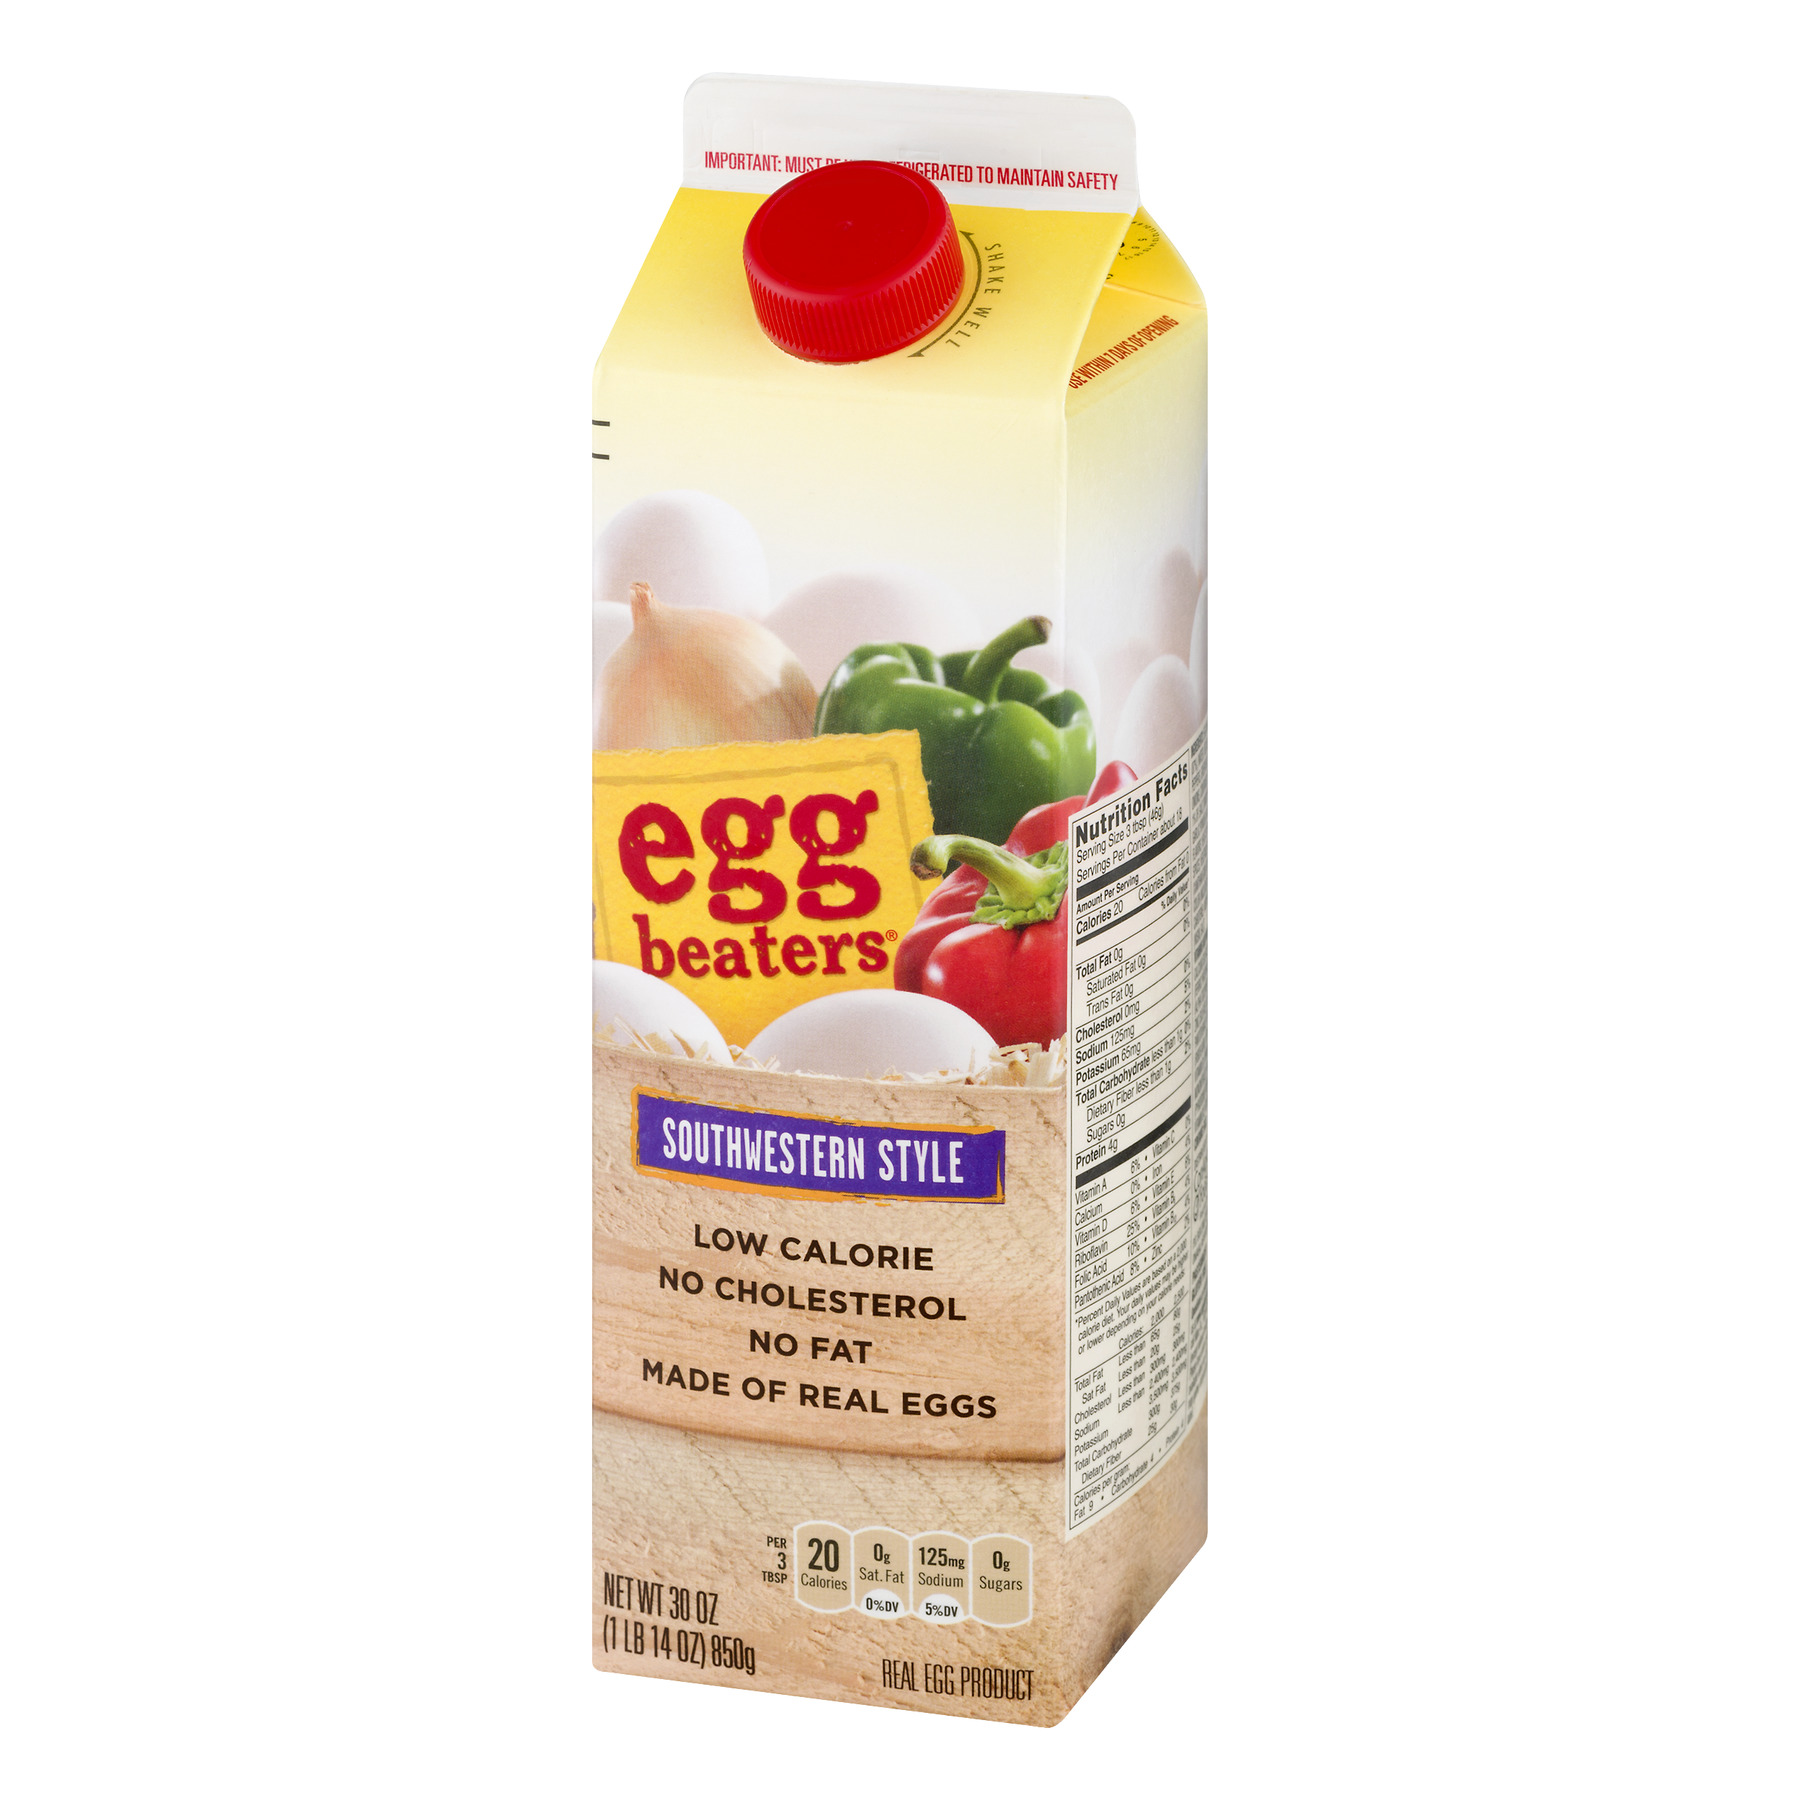 Egg Beaters Southwestern Nutrition Facts Besto Blog